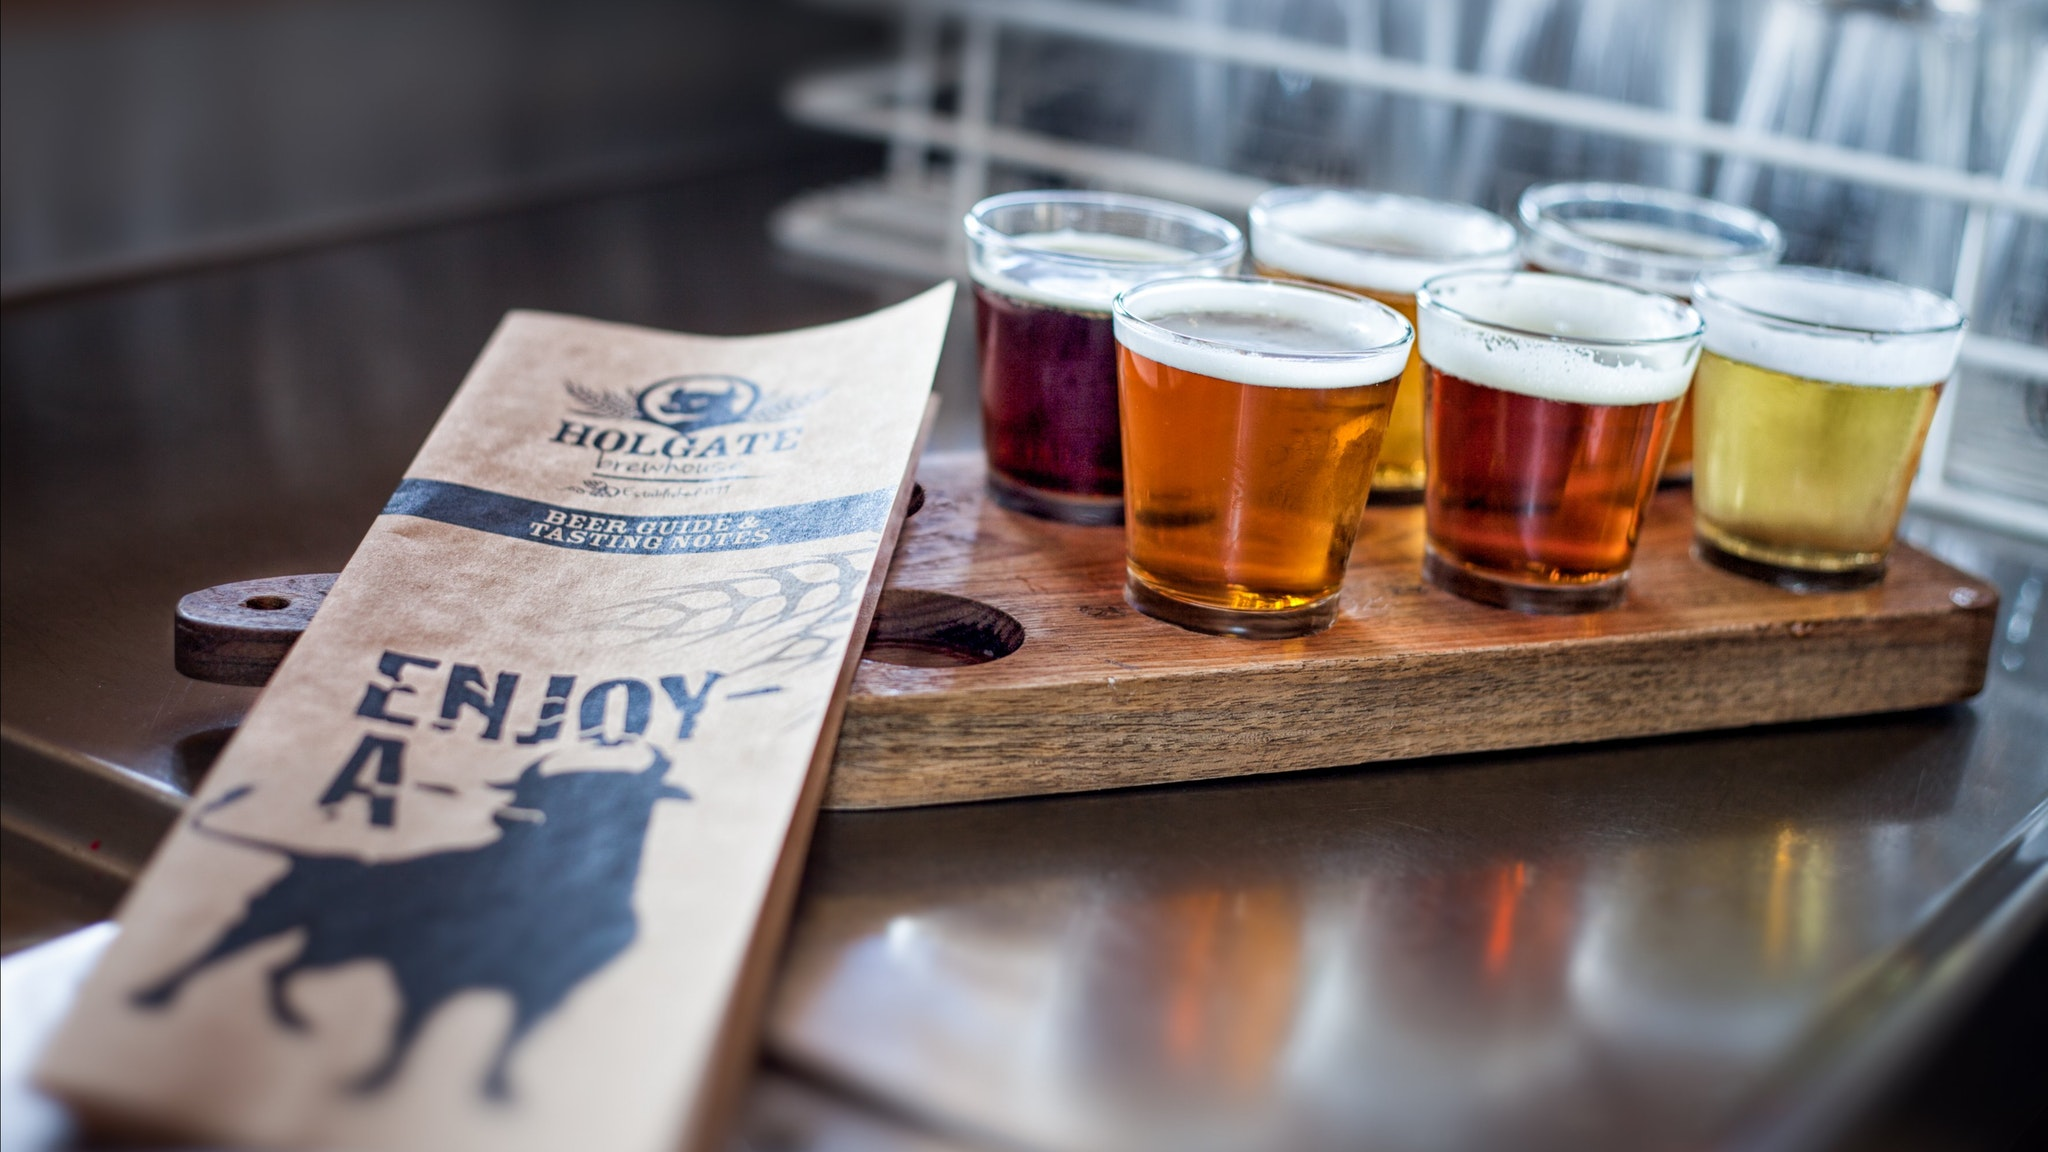 Try a paddle of Holgate beers